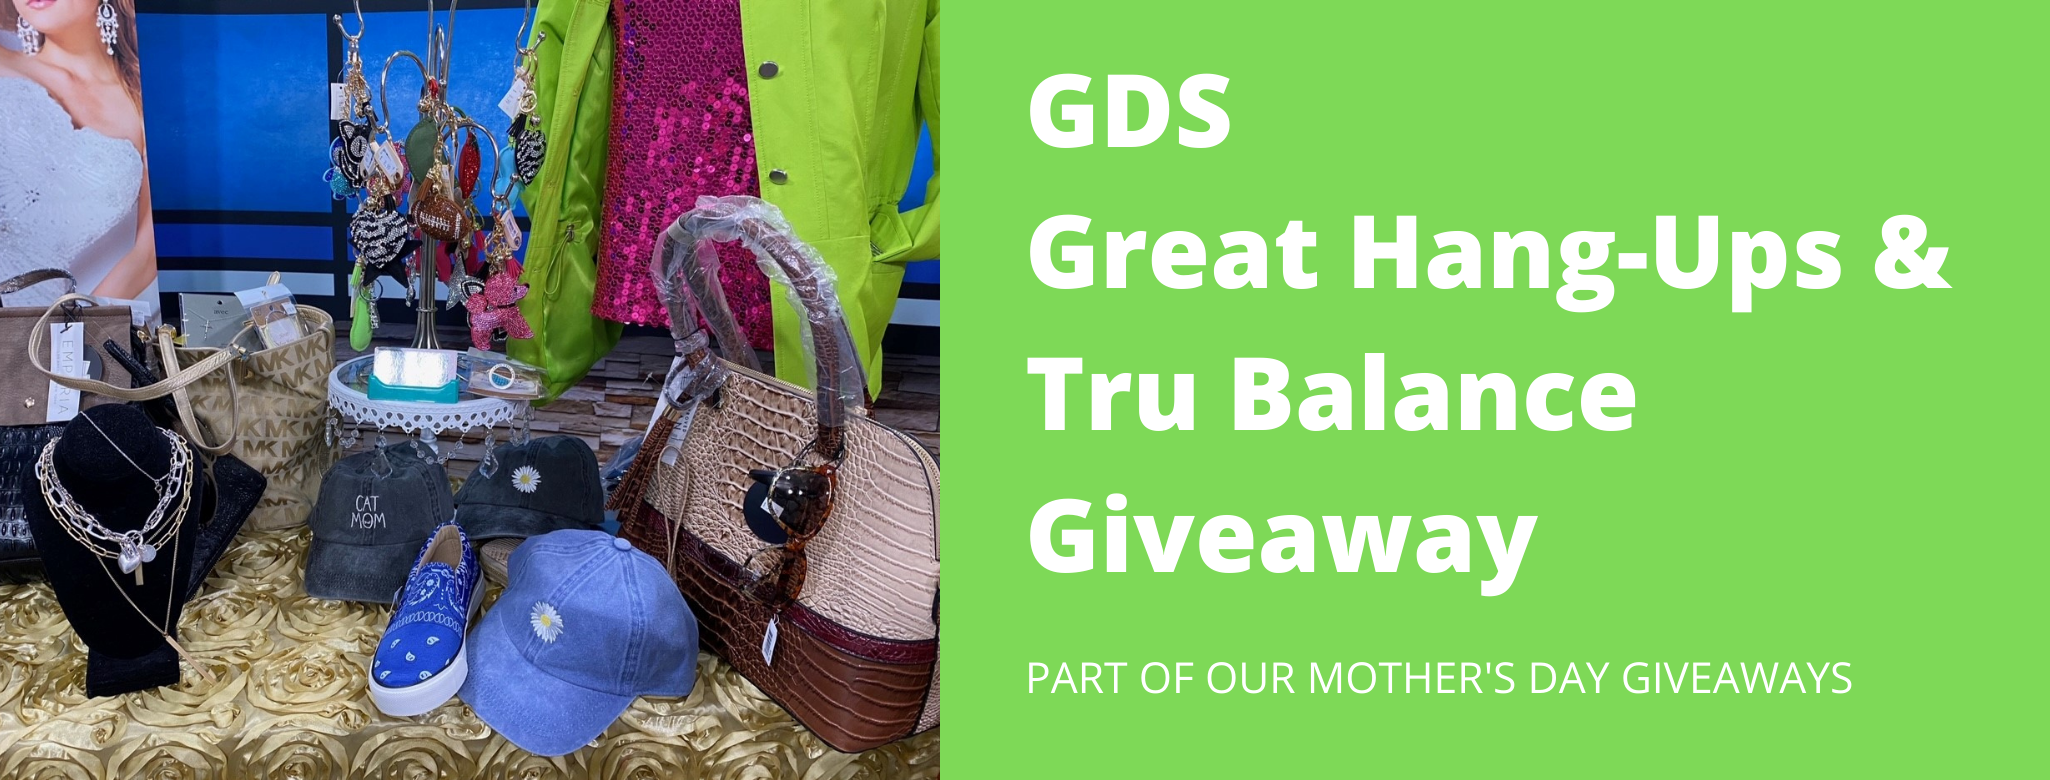 GDS Great Hang-Ups & Tru Balance Giveaway